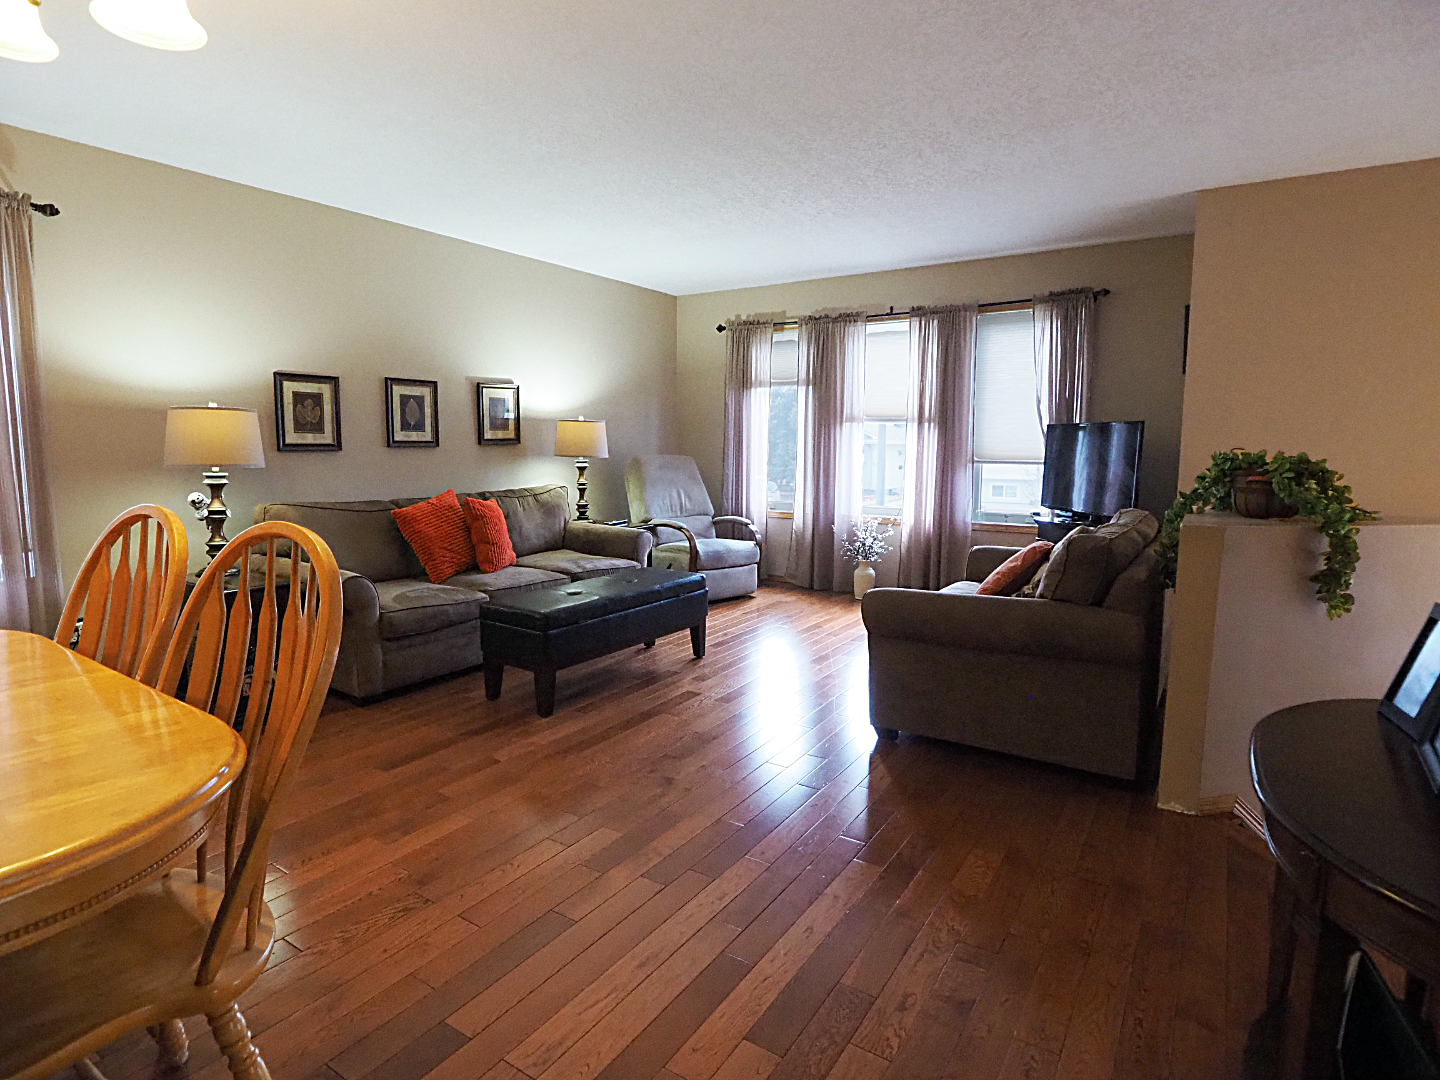 66 Excell Street living room